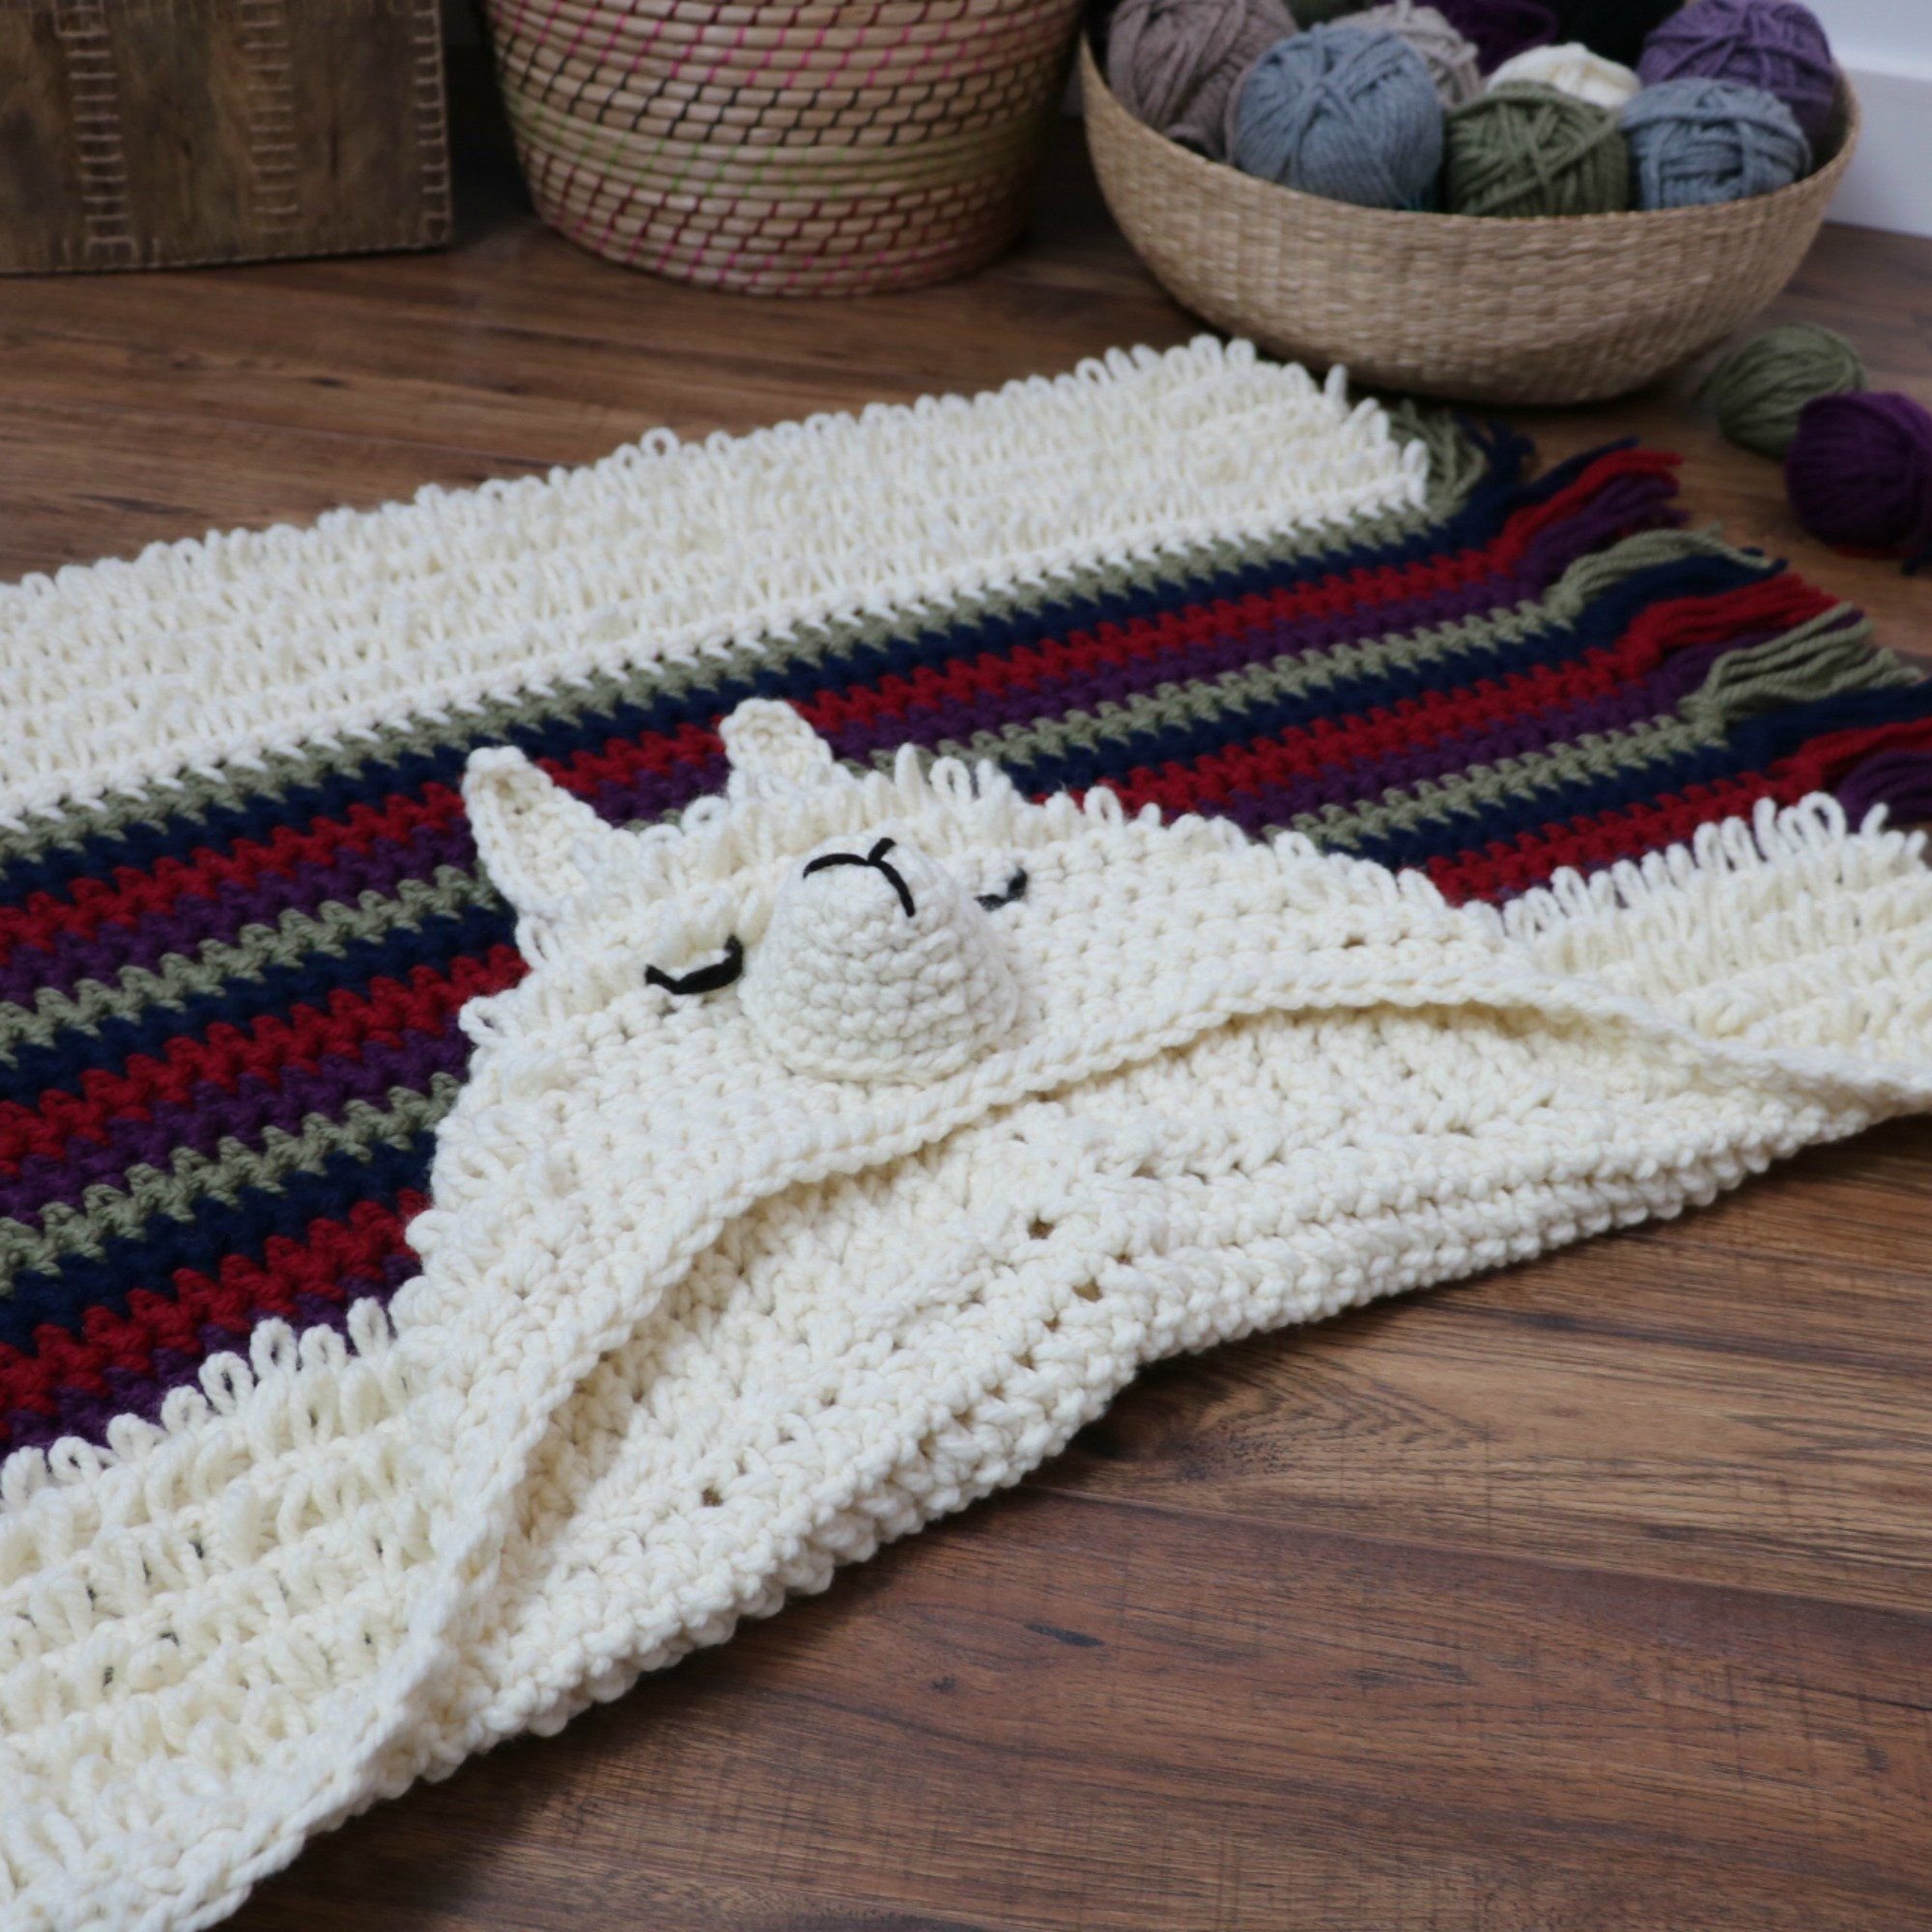 Crochet Pattern Alpaca My Llama Blanket Etsy Crochet Blanket Patterns Crochet Patterns Alpaca Blanket